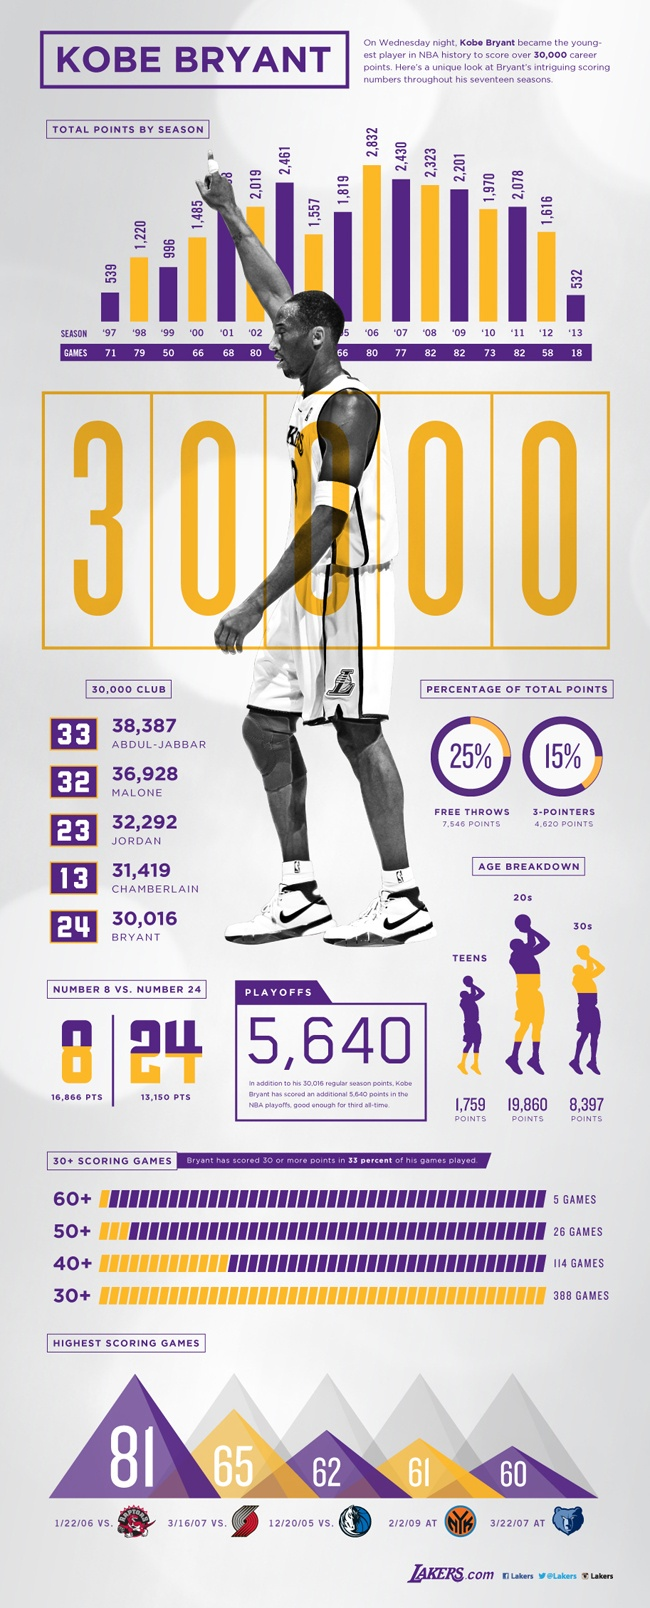 Kobe Bryant 30,000 Points Infographic | THE OFFICIAL SITE OF THE LOS ANGELES LAKERS